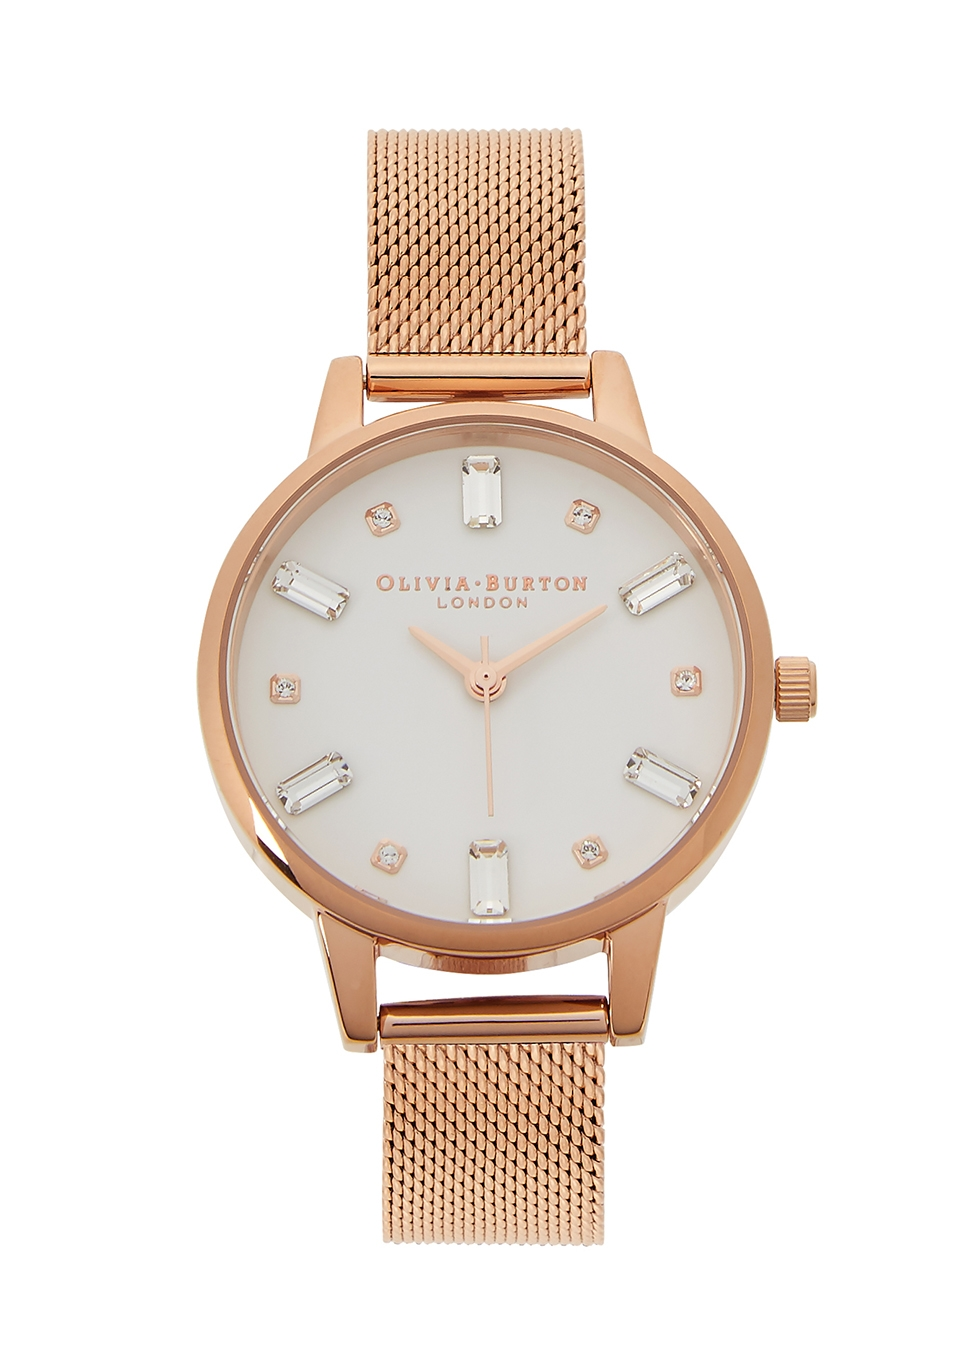 Bejewelled rose gold-plated watch